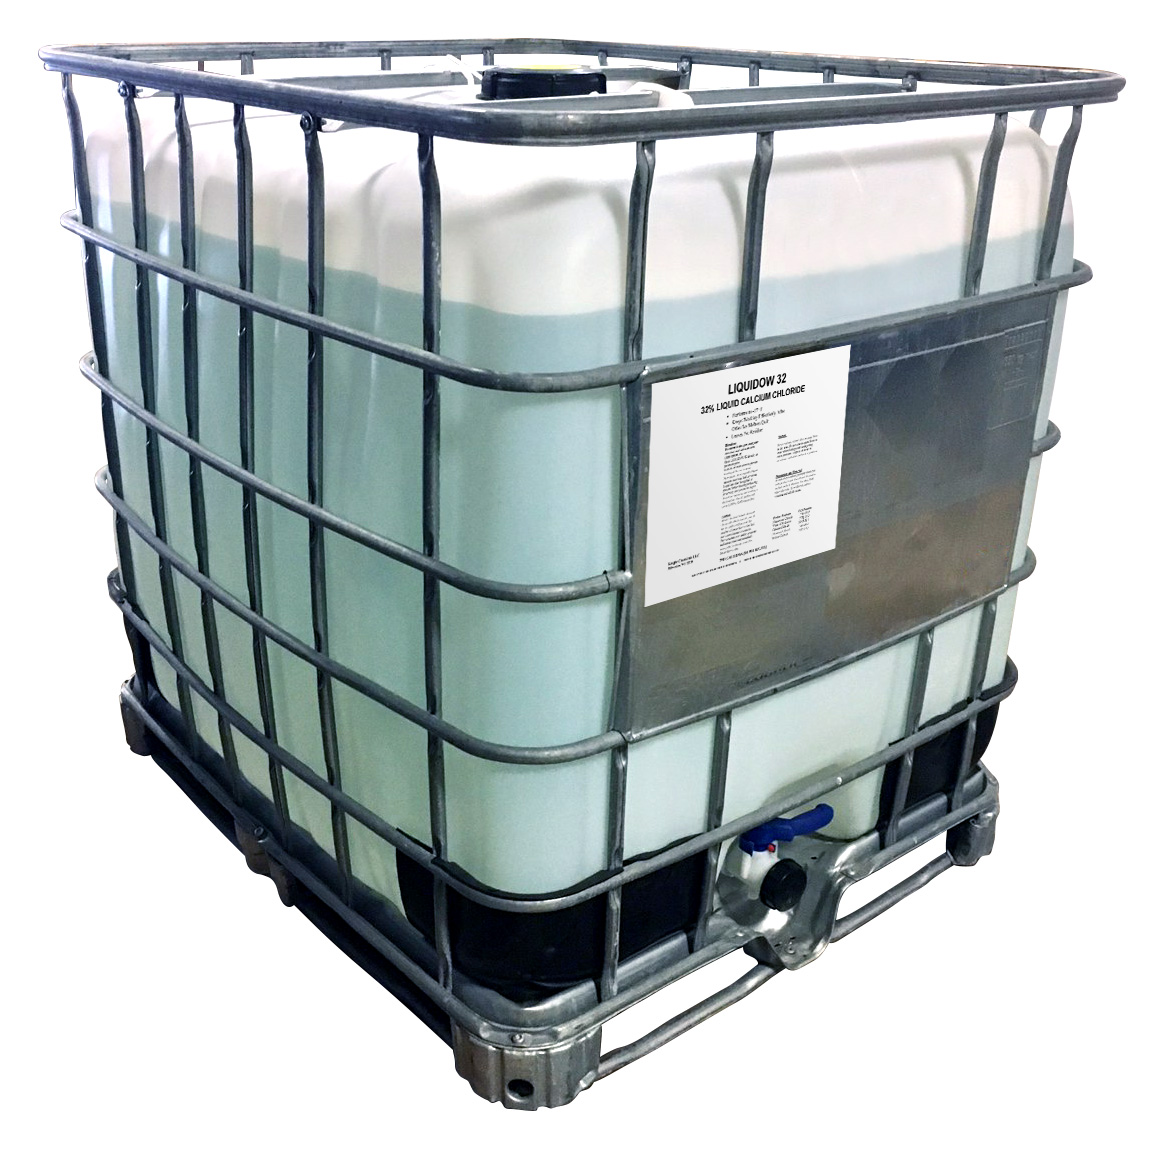 ICE MELT CALCIUM CHLORIDE LIQUID 250 GALLON TOTE 32%